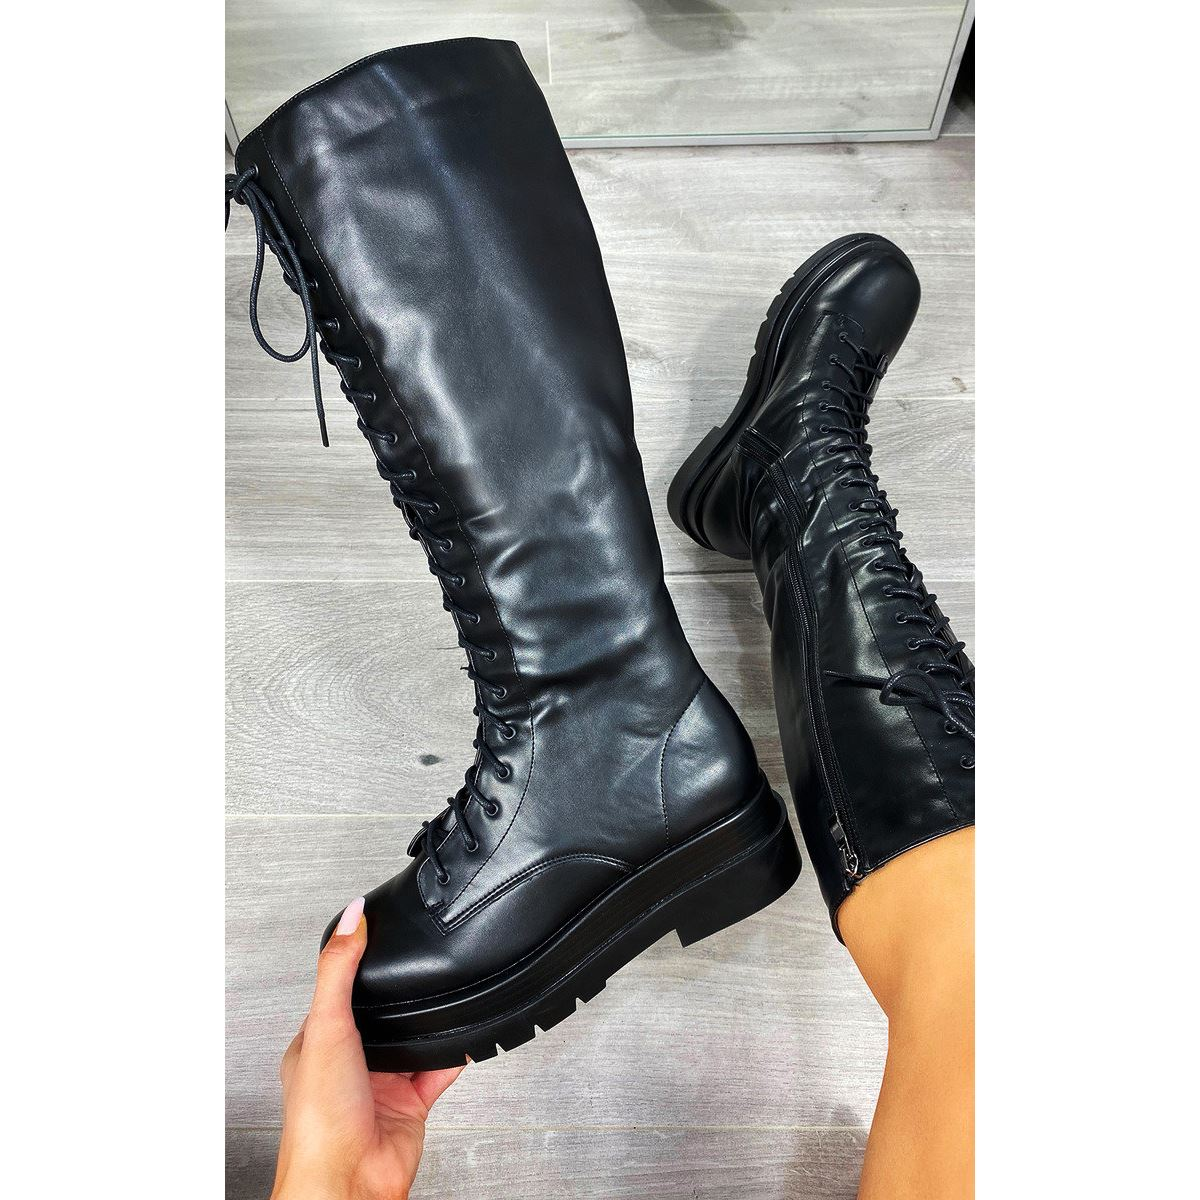 thumbnail 5 - Womens-Ladies-Lace-Up-Knee-Boots-Calf-High-Shoe-Grunge-Chunky-Sole-Size-Zip-New